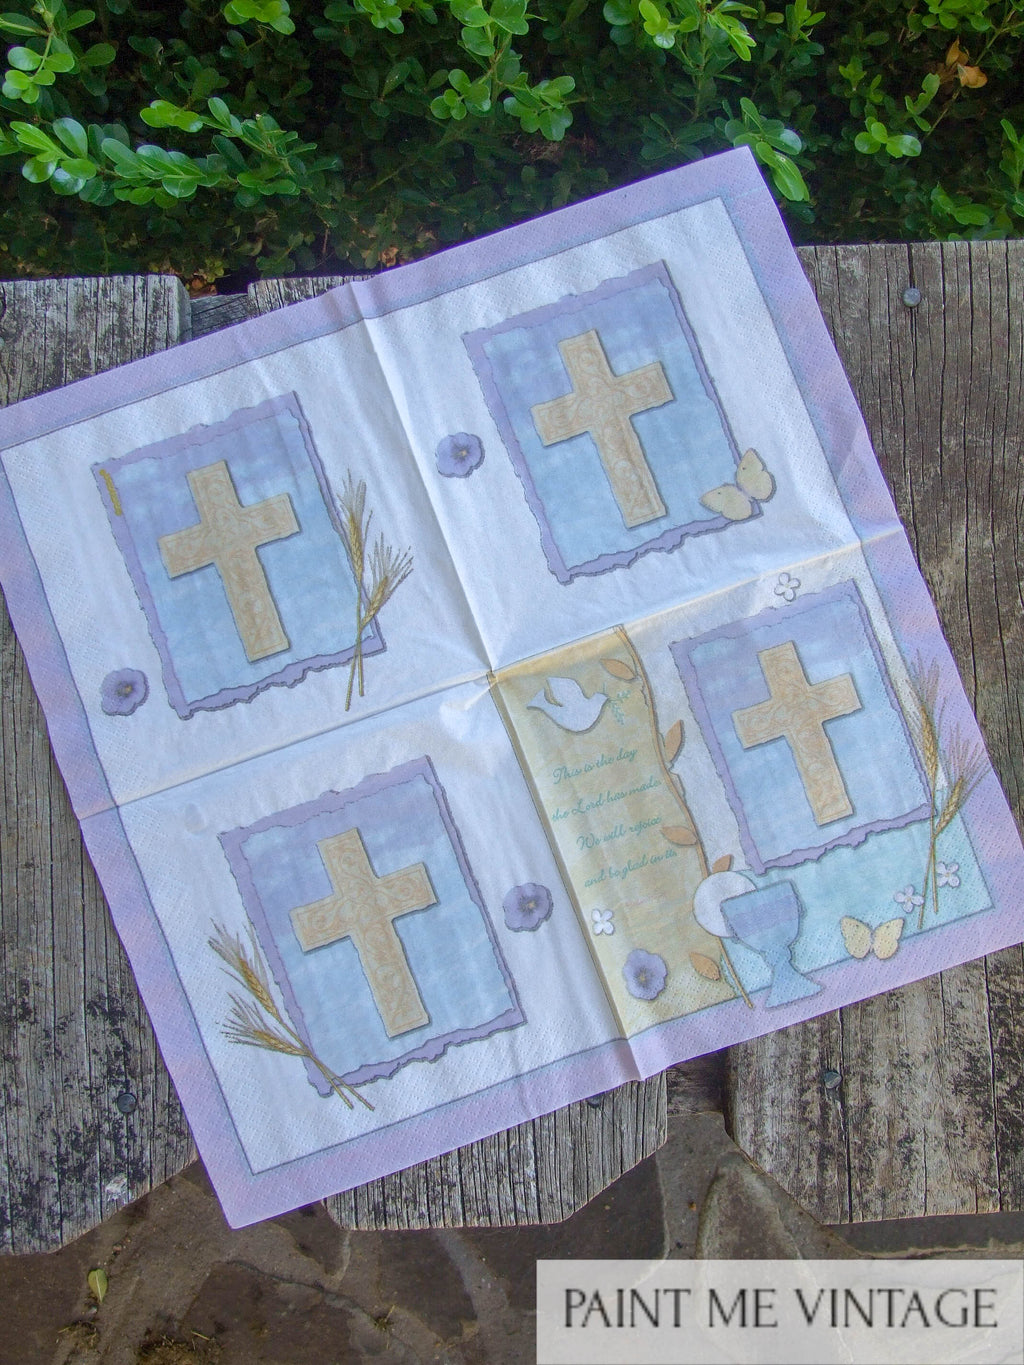 Napkin for Decoupage Psalm Images with Cross | Paint Me Vintage | Tauranga, New Zealand | chalk paint | chalkpaint | silicone mould | furniture painting | vintage paint | stencils | IOD | Iron Orchid Design | coloured wax | furniture wax | furniture transfers | workshops | vintage paint nz | painting old furniture nz | upcycling furniture nz | vintage paint stockists | Napkin for Decoupage Psalm Images with Cross